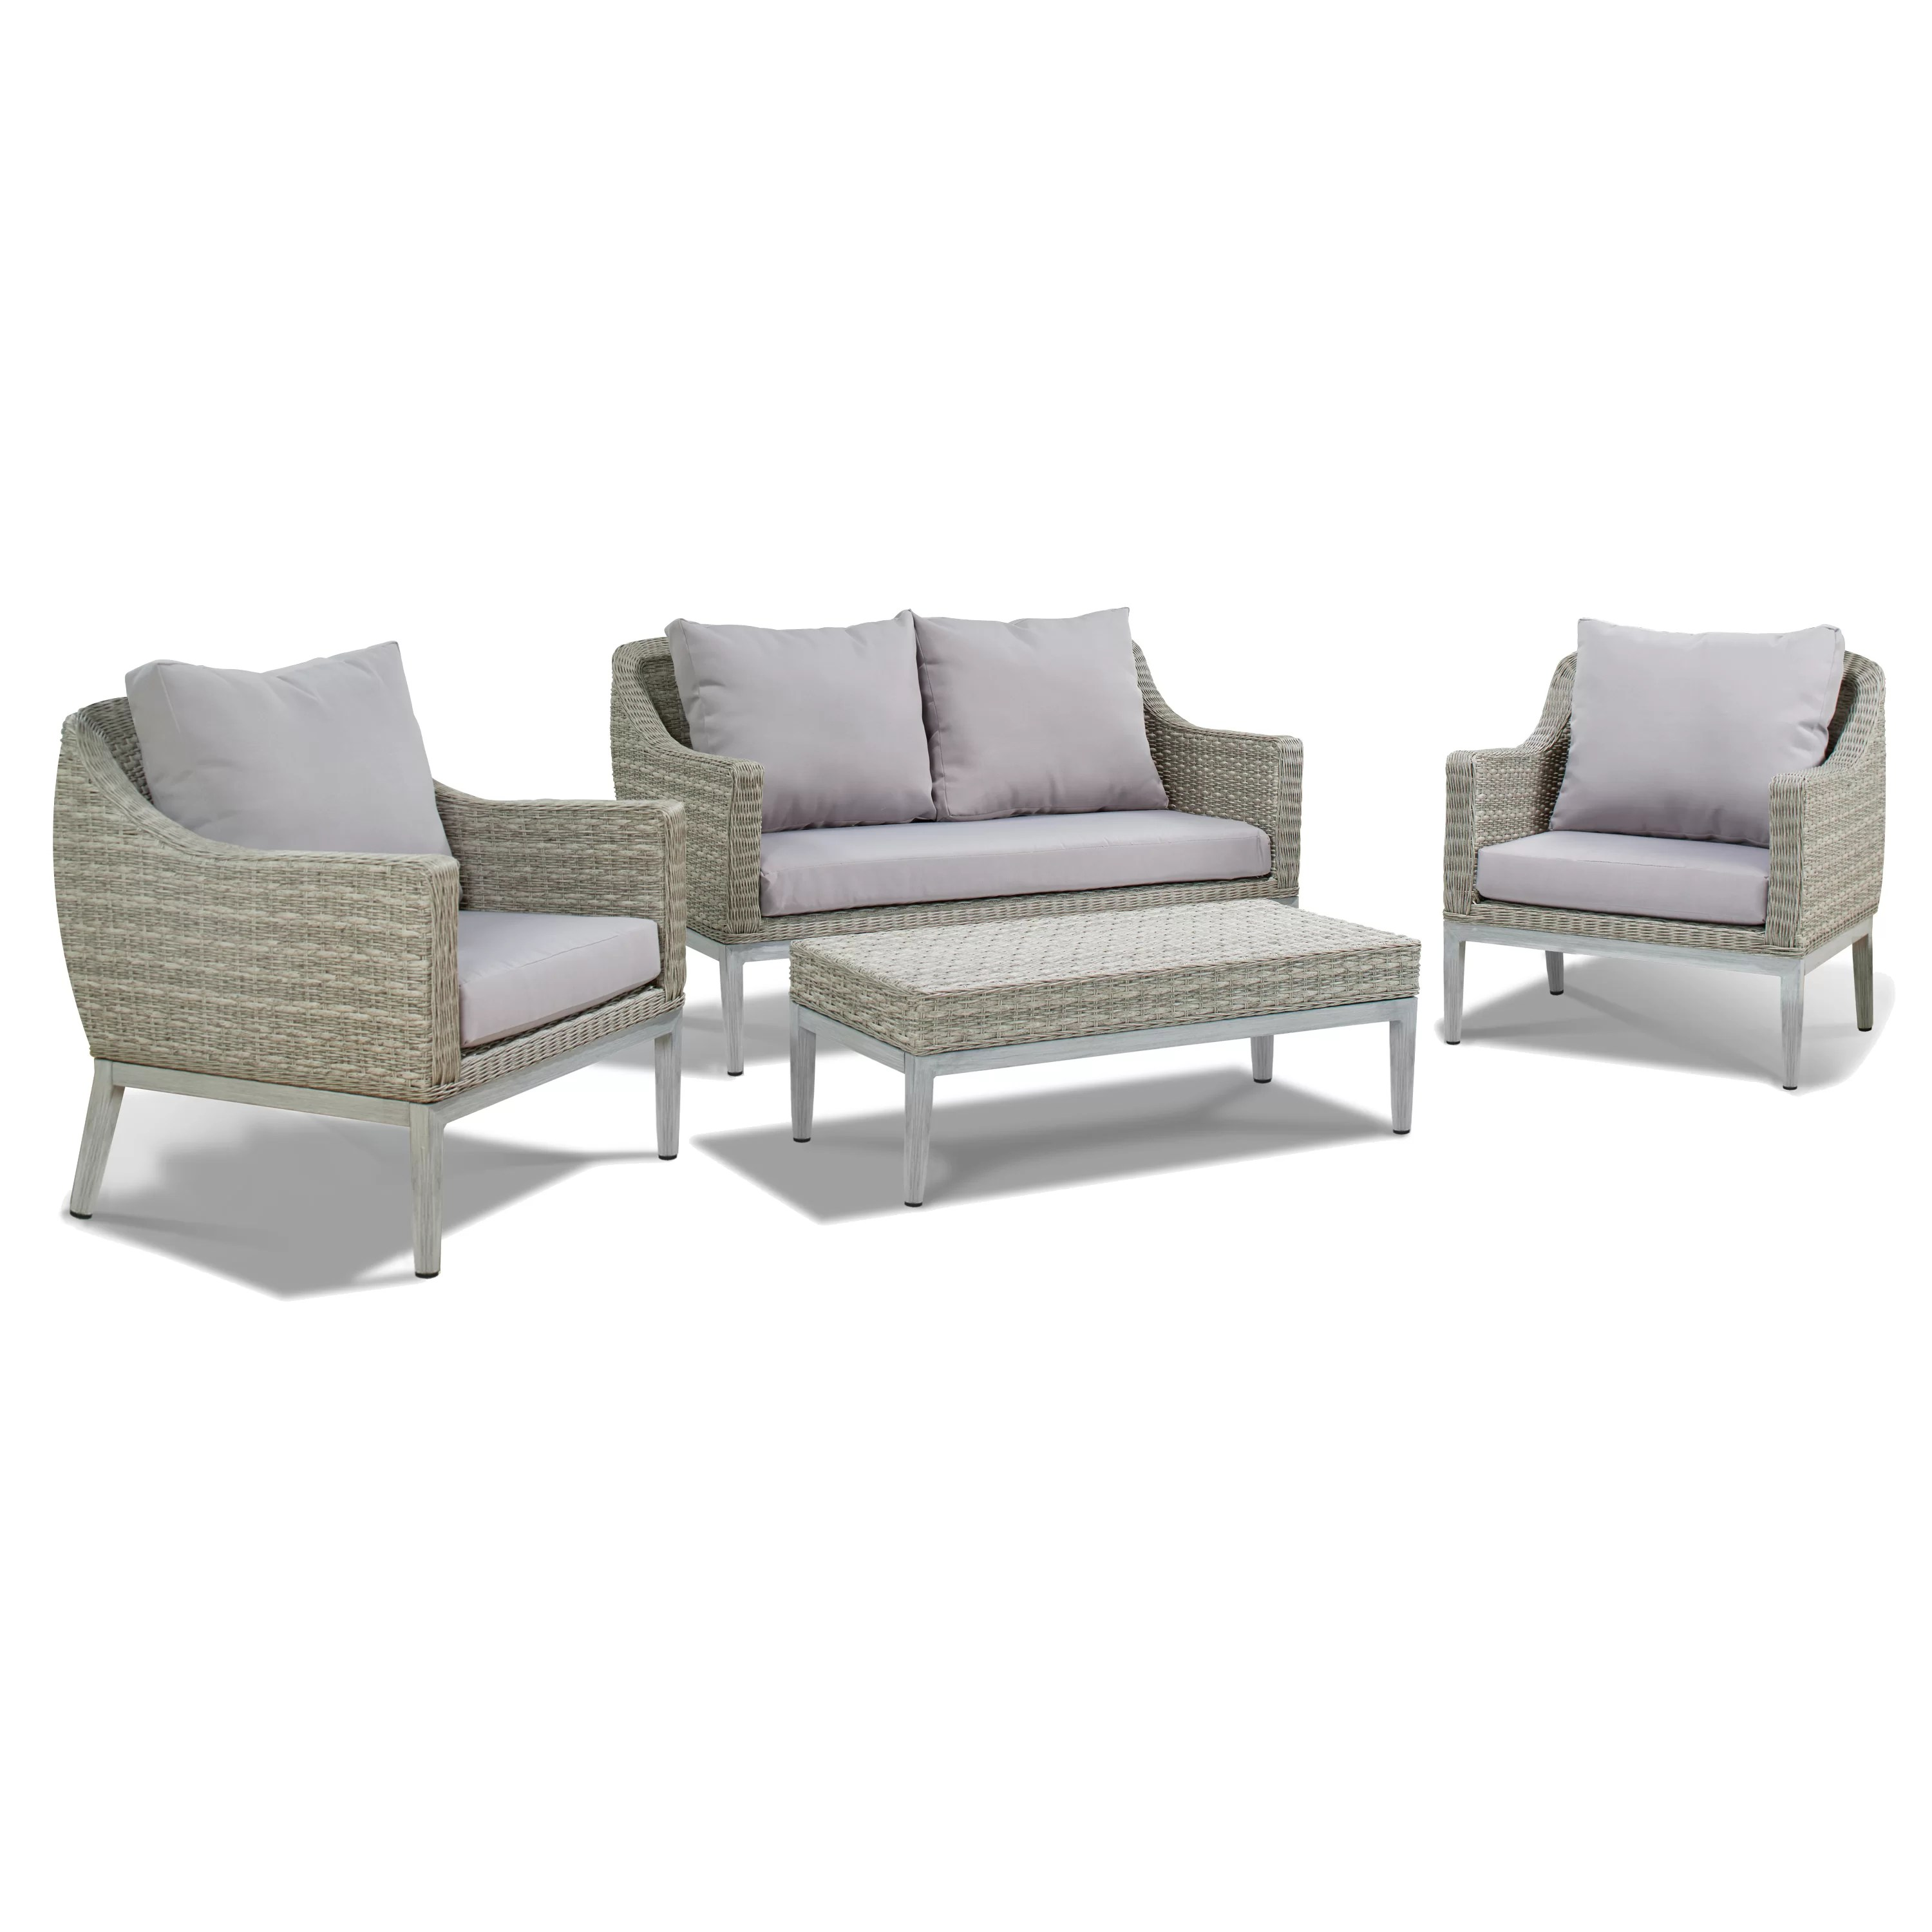 Rattan Sofa Lyndell 4 Piece Rattan Sofa Seating Group With Cushions